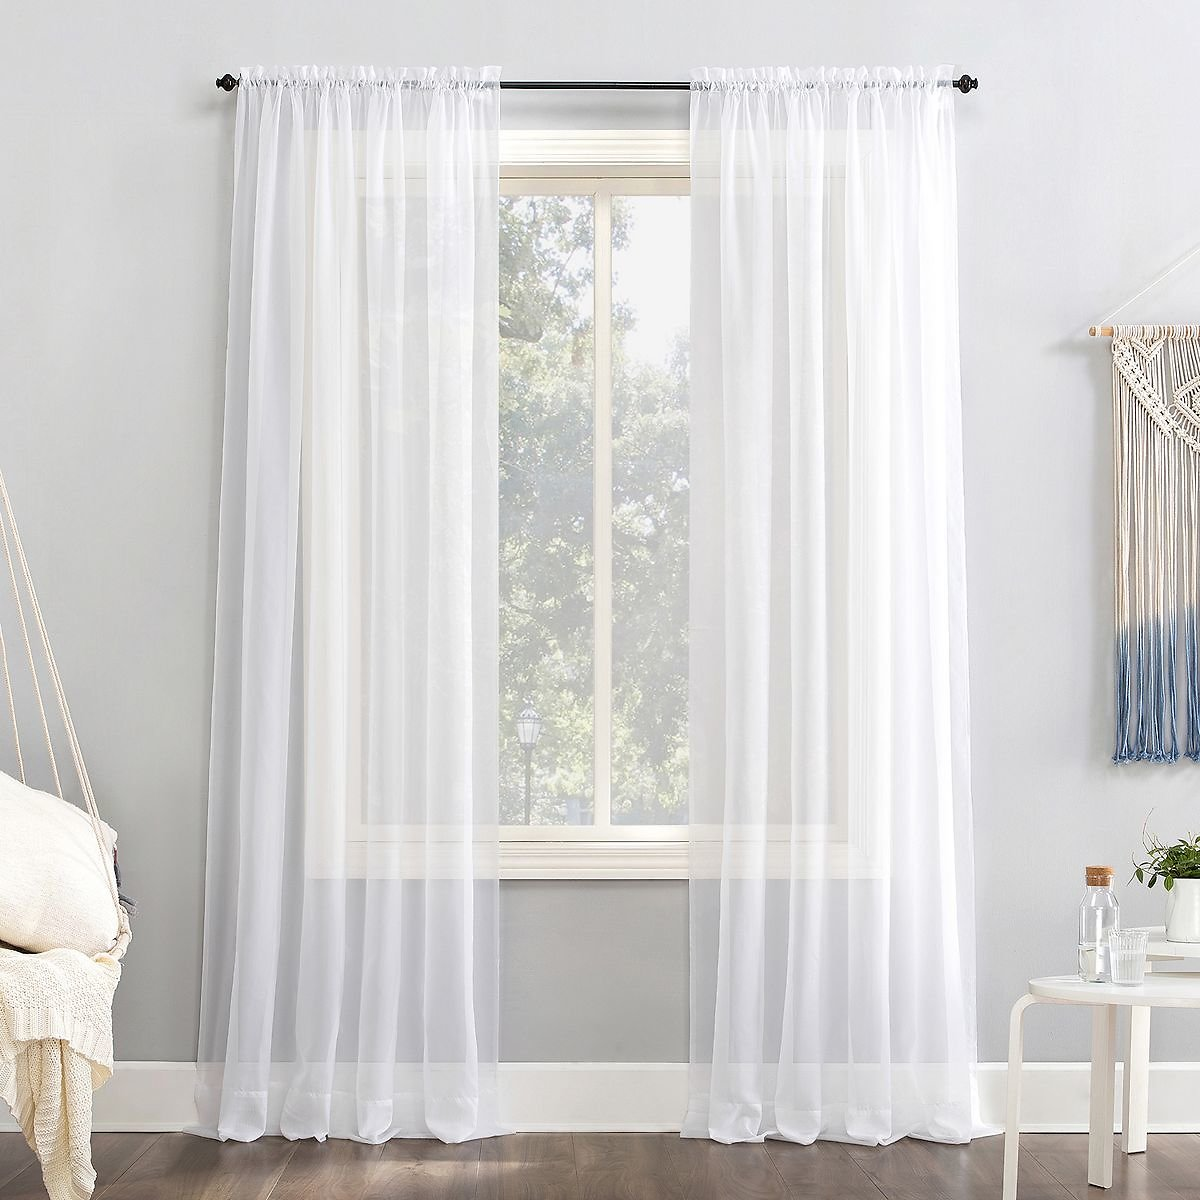 No. 918 1-Panel Emily Solid Sheer Voile Window Curtain